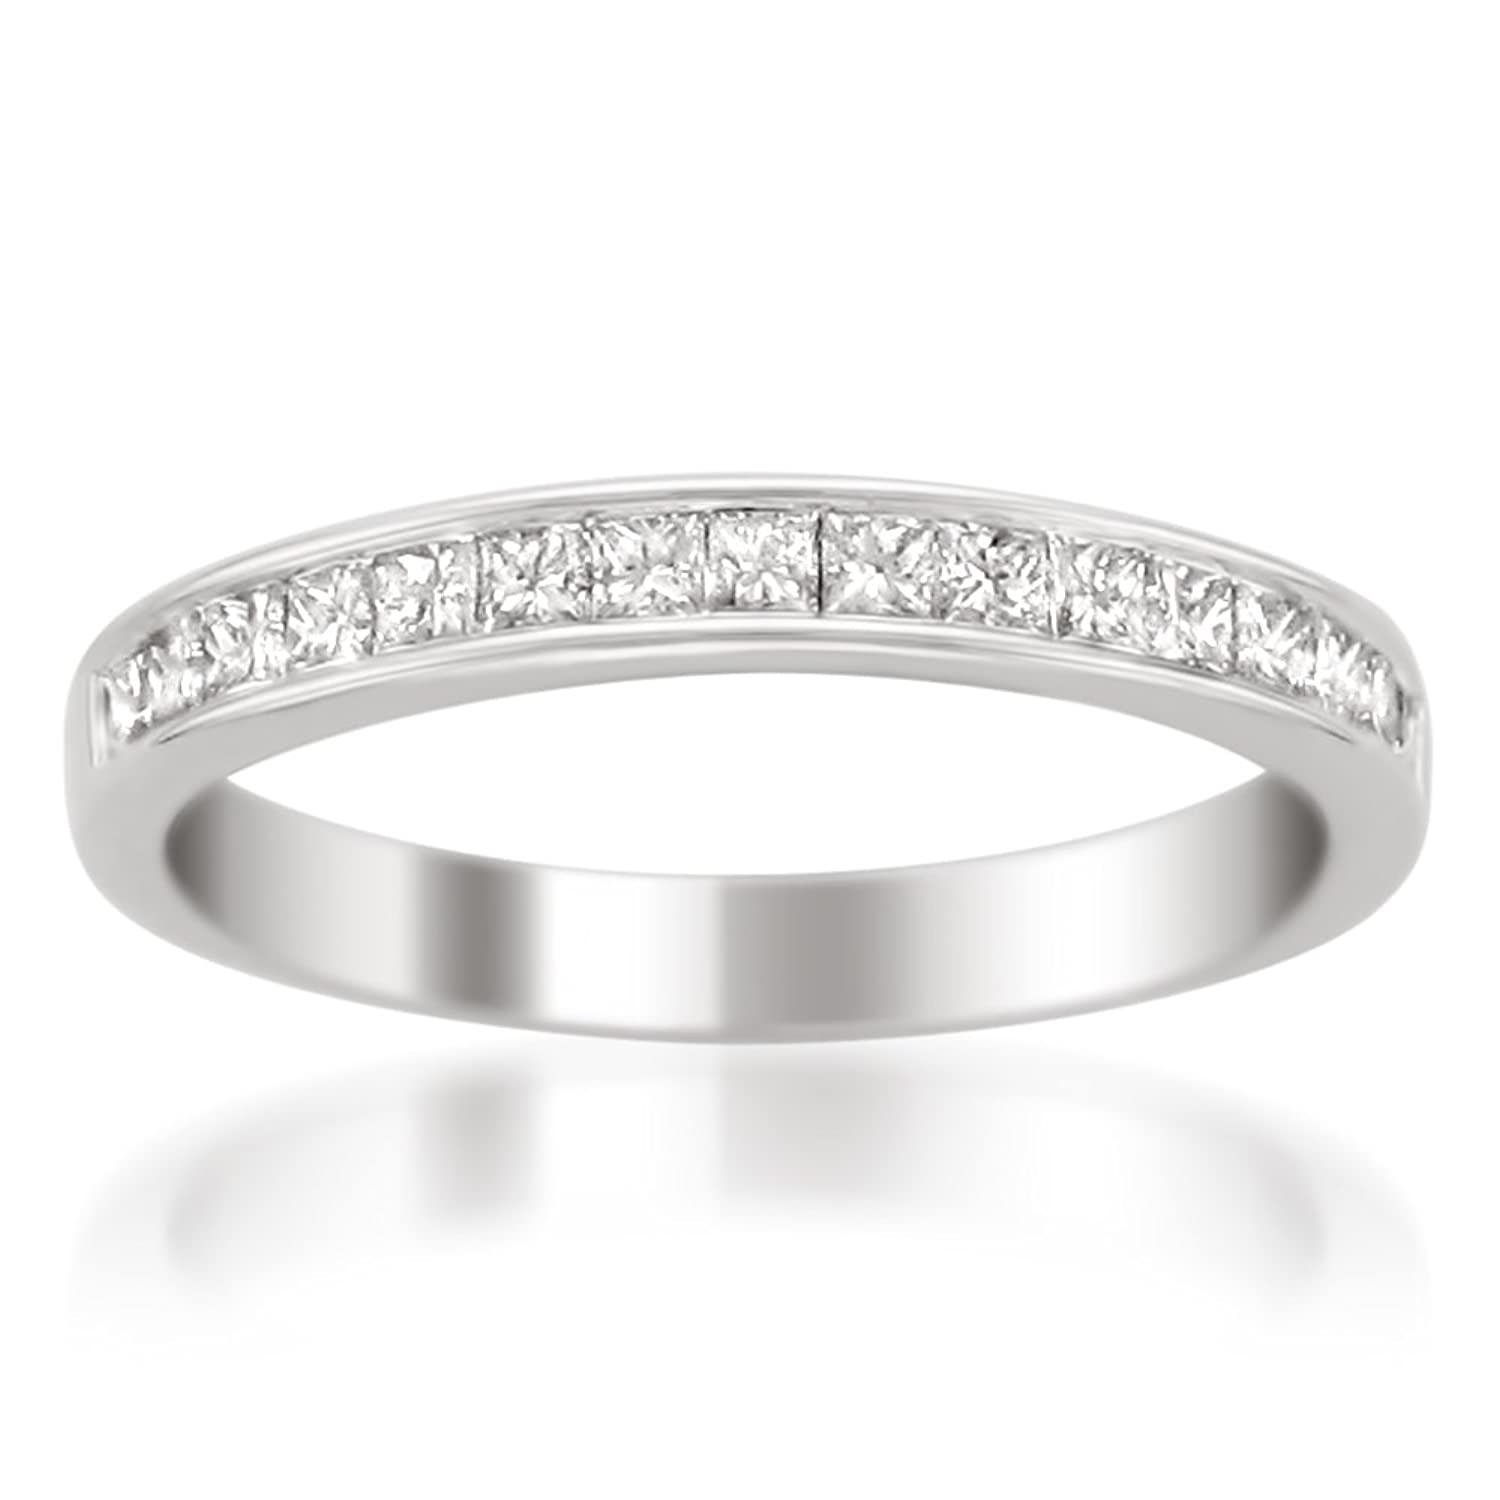 14k White Gold Princess-cut Diamond 16-stone Bridal Wedding Band Ring (1/2 cttw, H-I, SI2-I1)